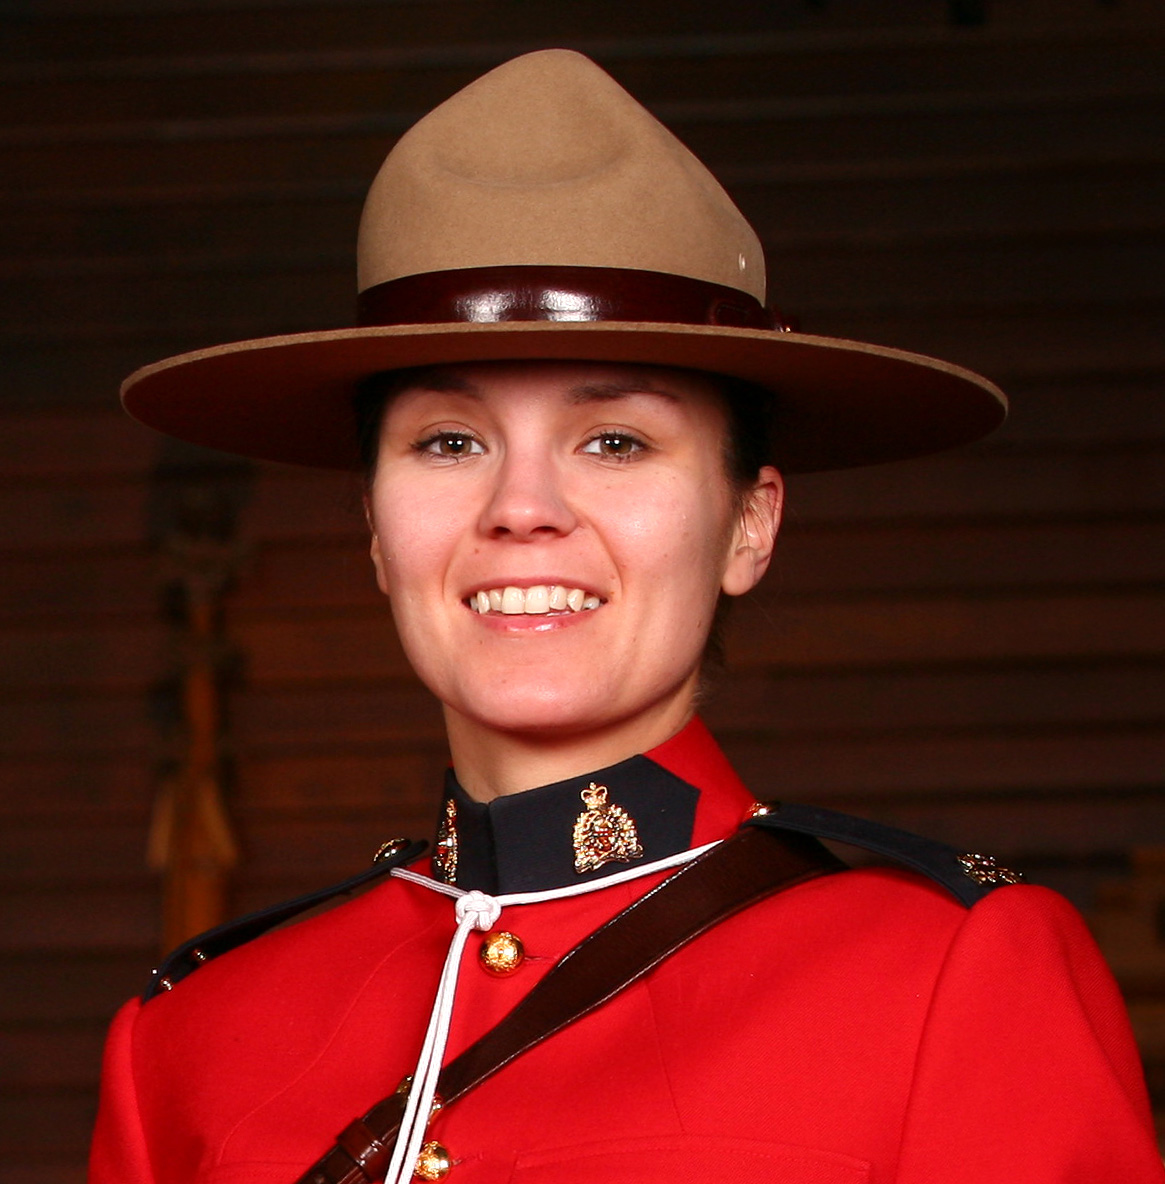 Constable Chelsey Alice Robinson – © Her Majesty the Queen in Right of Canada as represented by the Royal Canadian Mounted Police